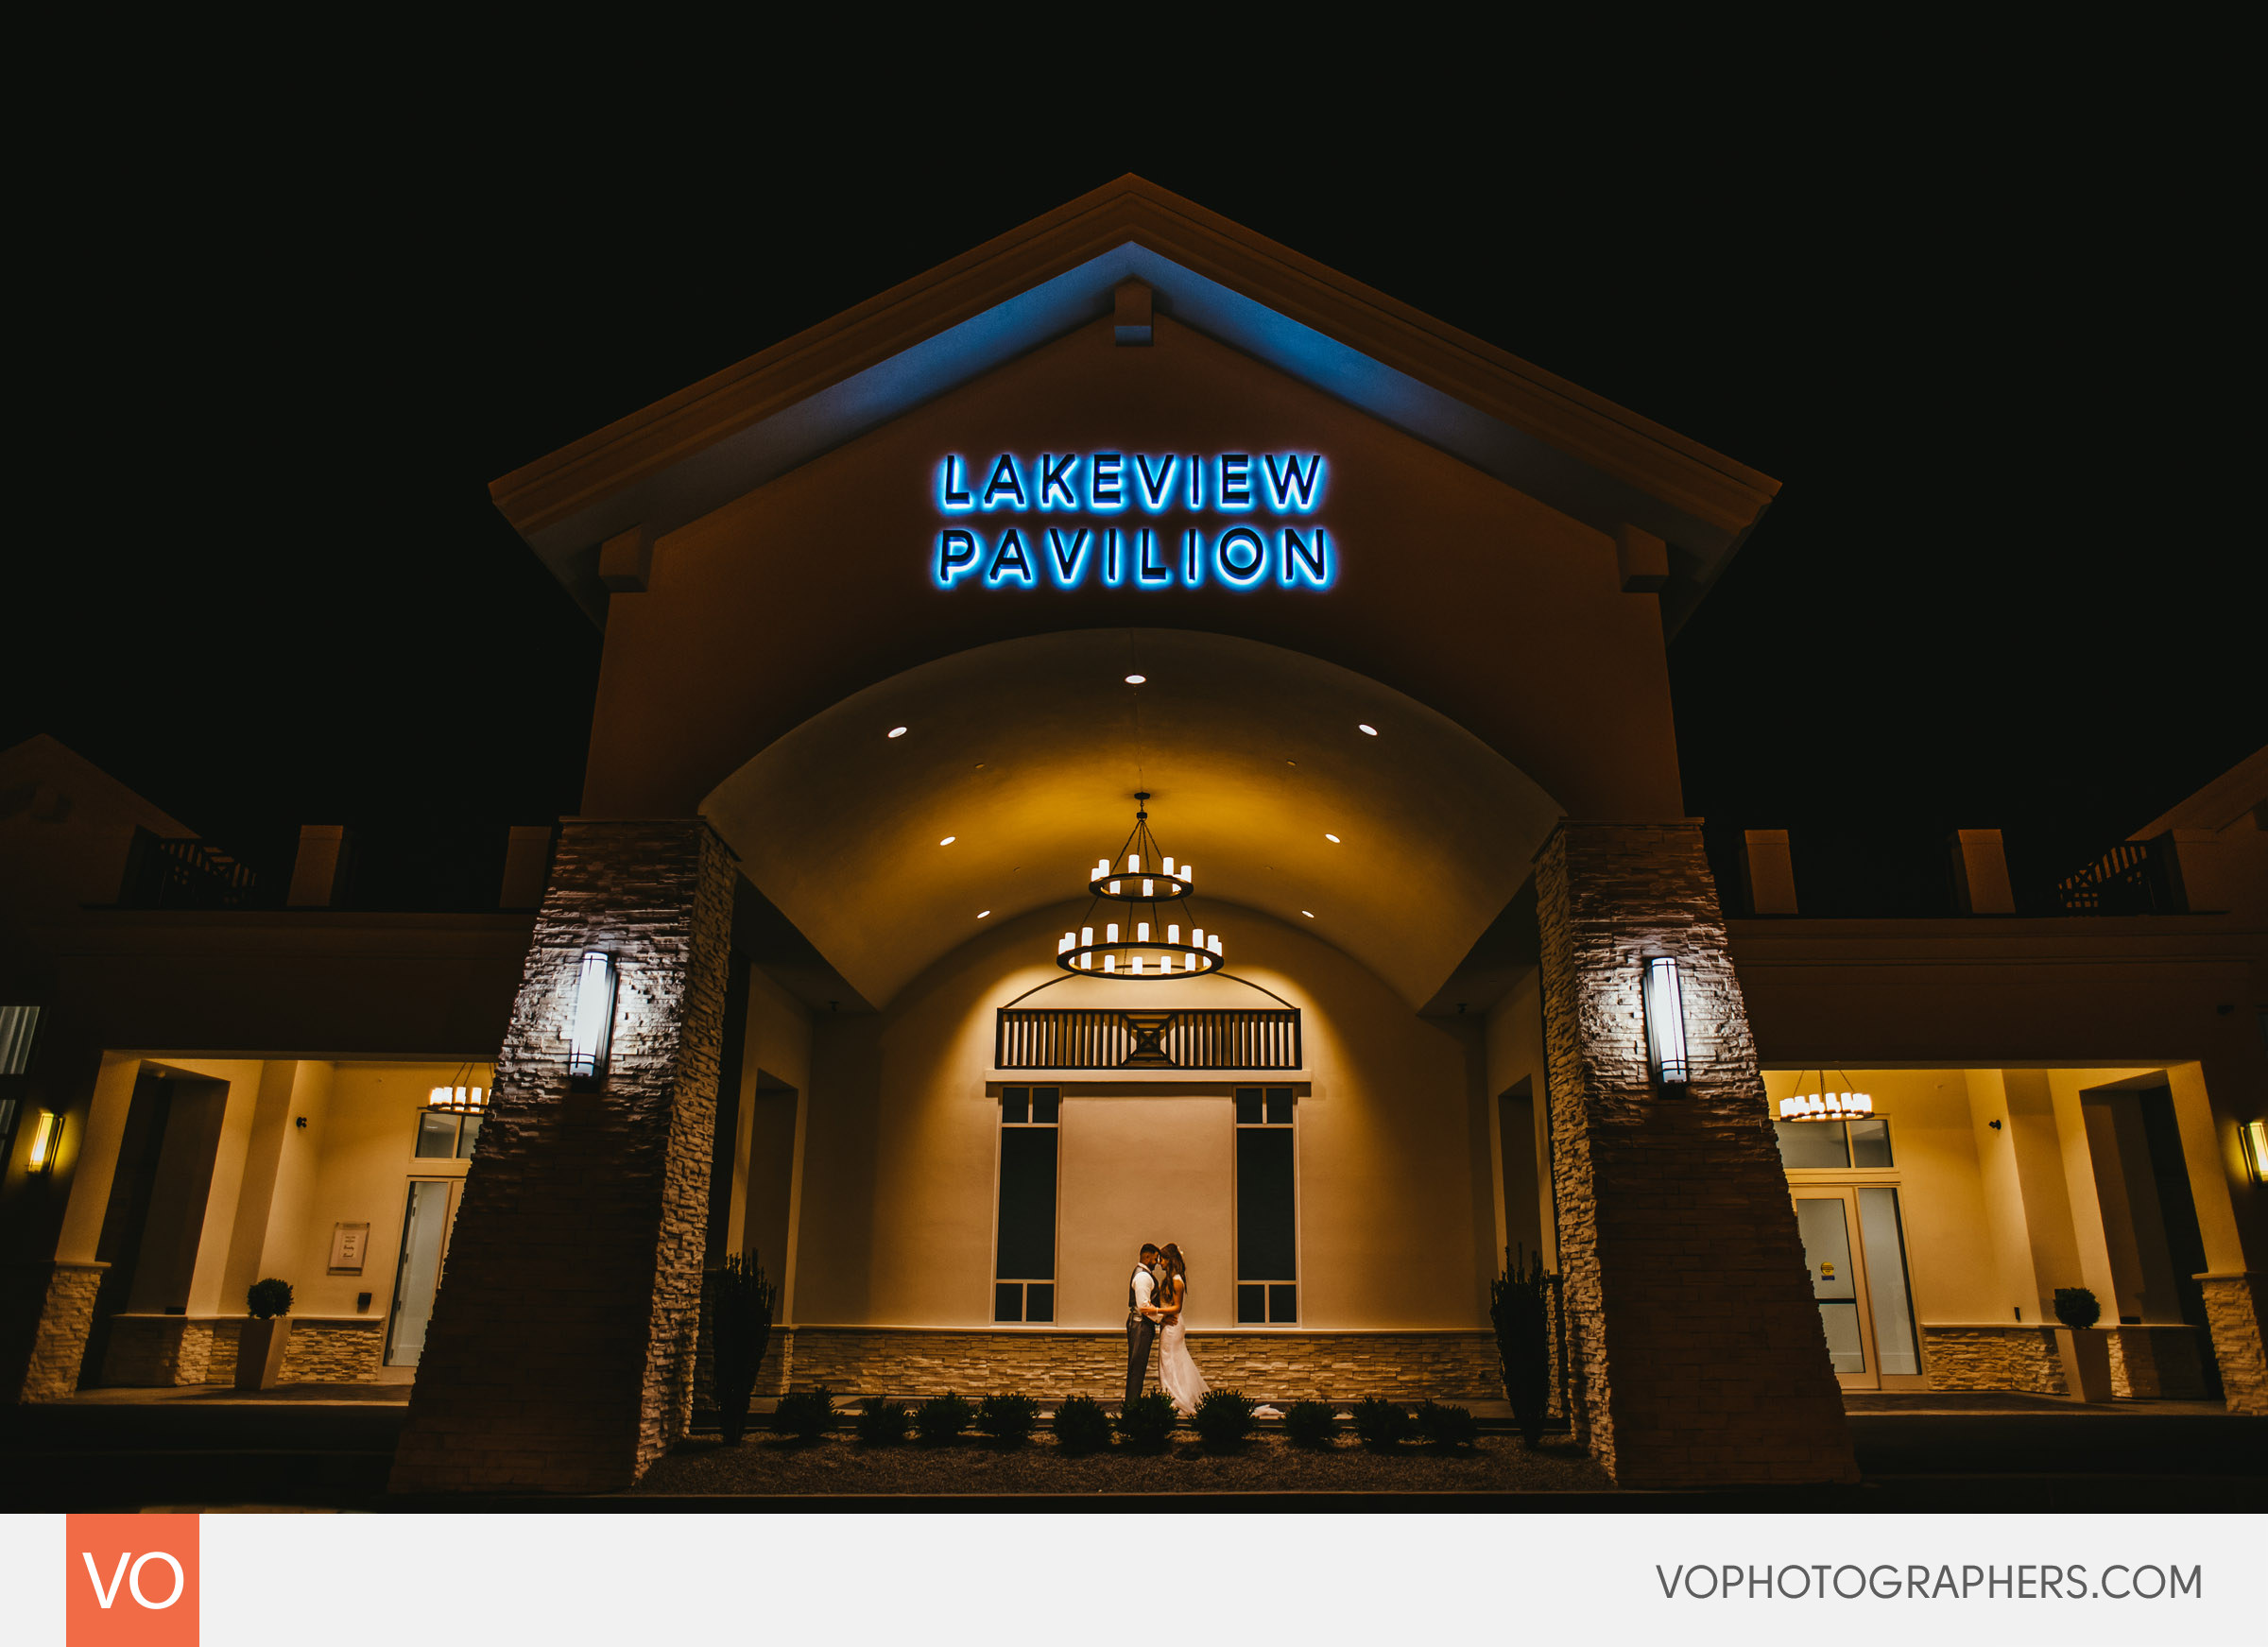 Oriana-Barem-Lakeview-Pavilion-Wedding-0054